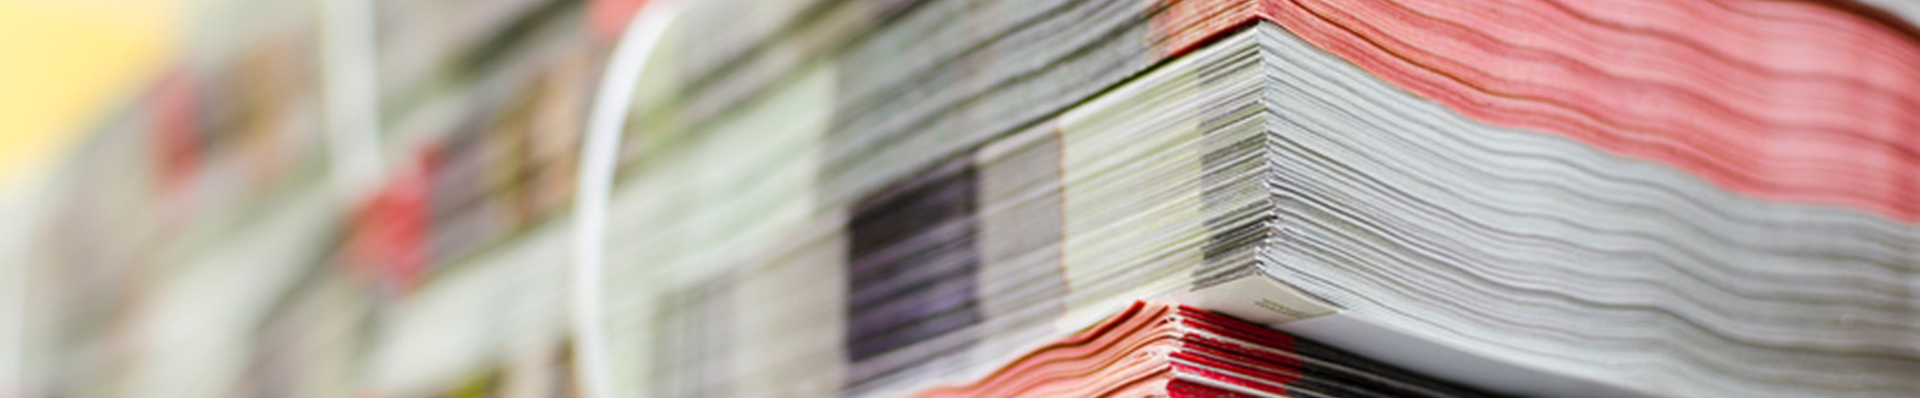 Pile of bundled magazines in offset print plant delivery department, selective focus background